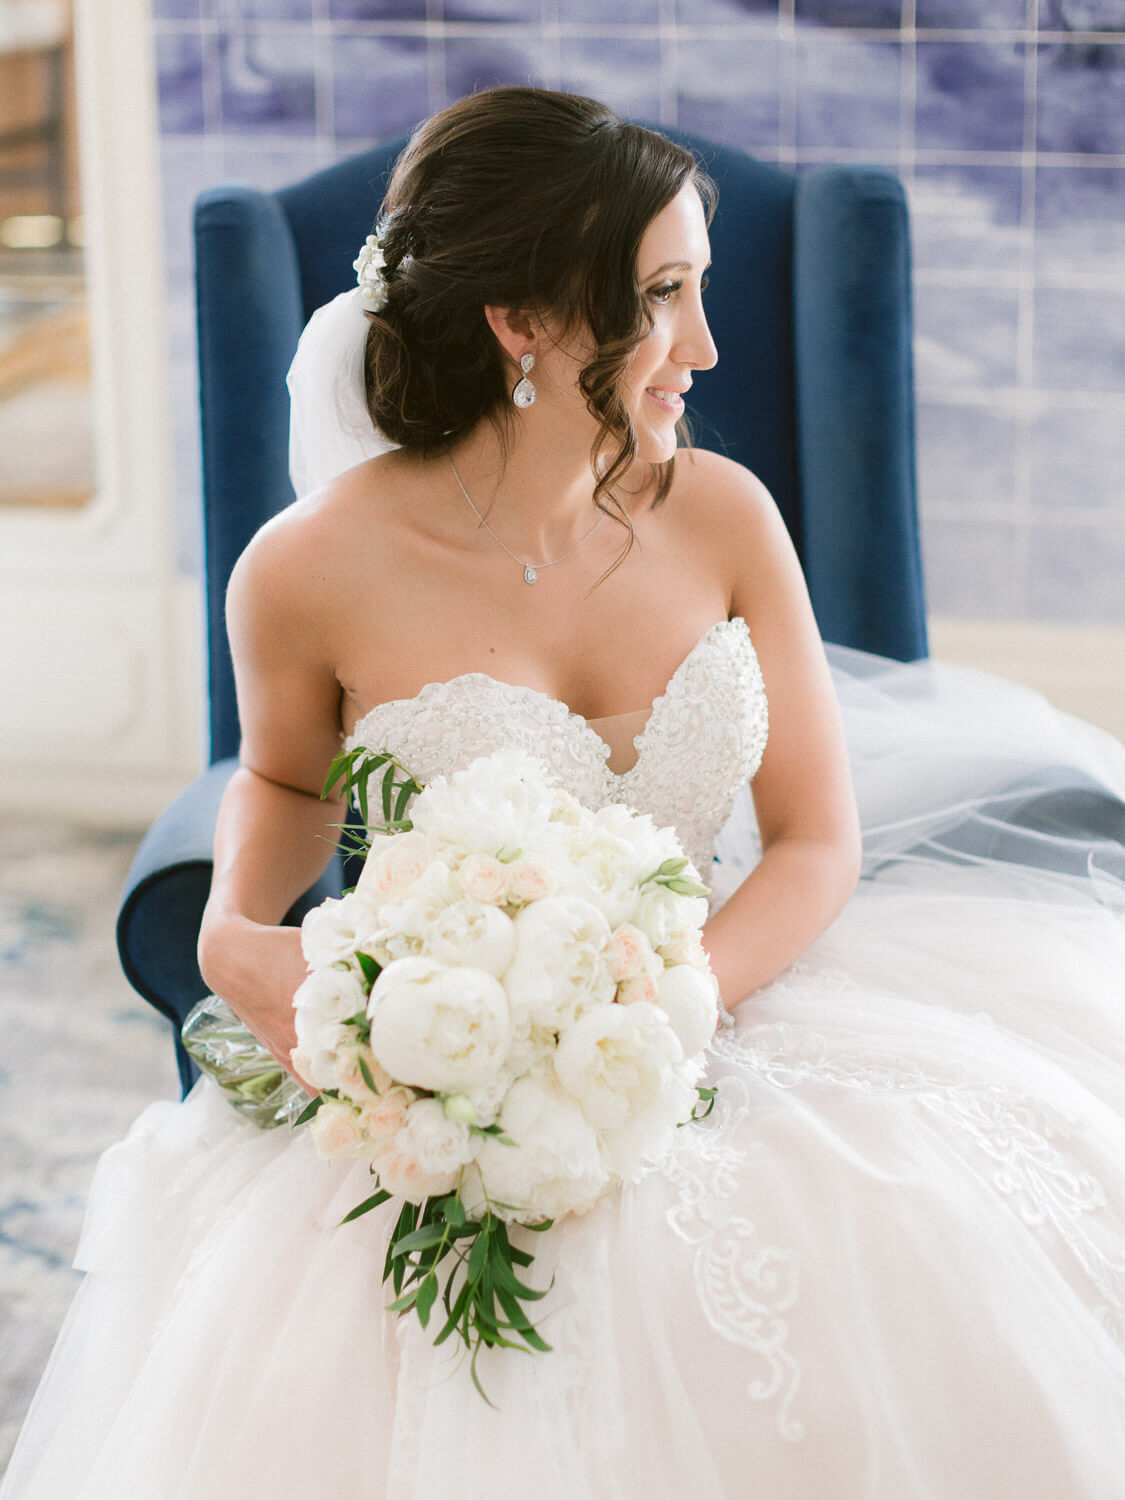 bridal sitting down portrait with white florals bouquet by Portugal Wedding Photographer